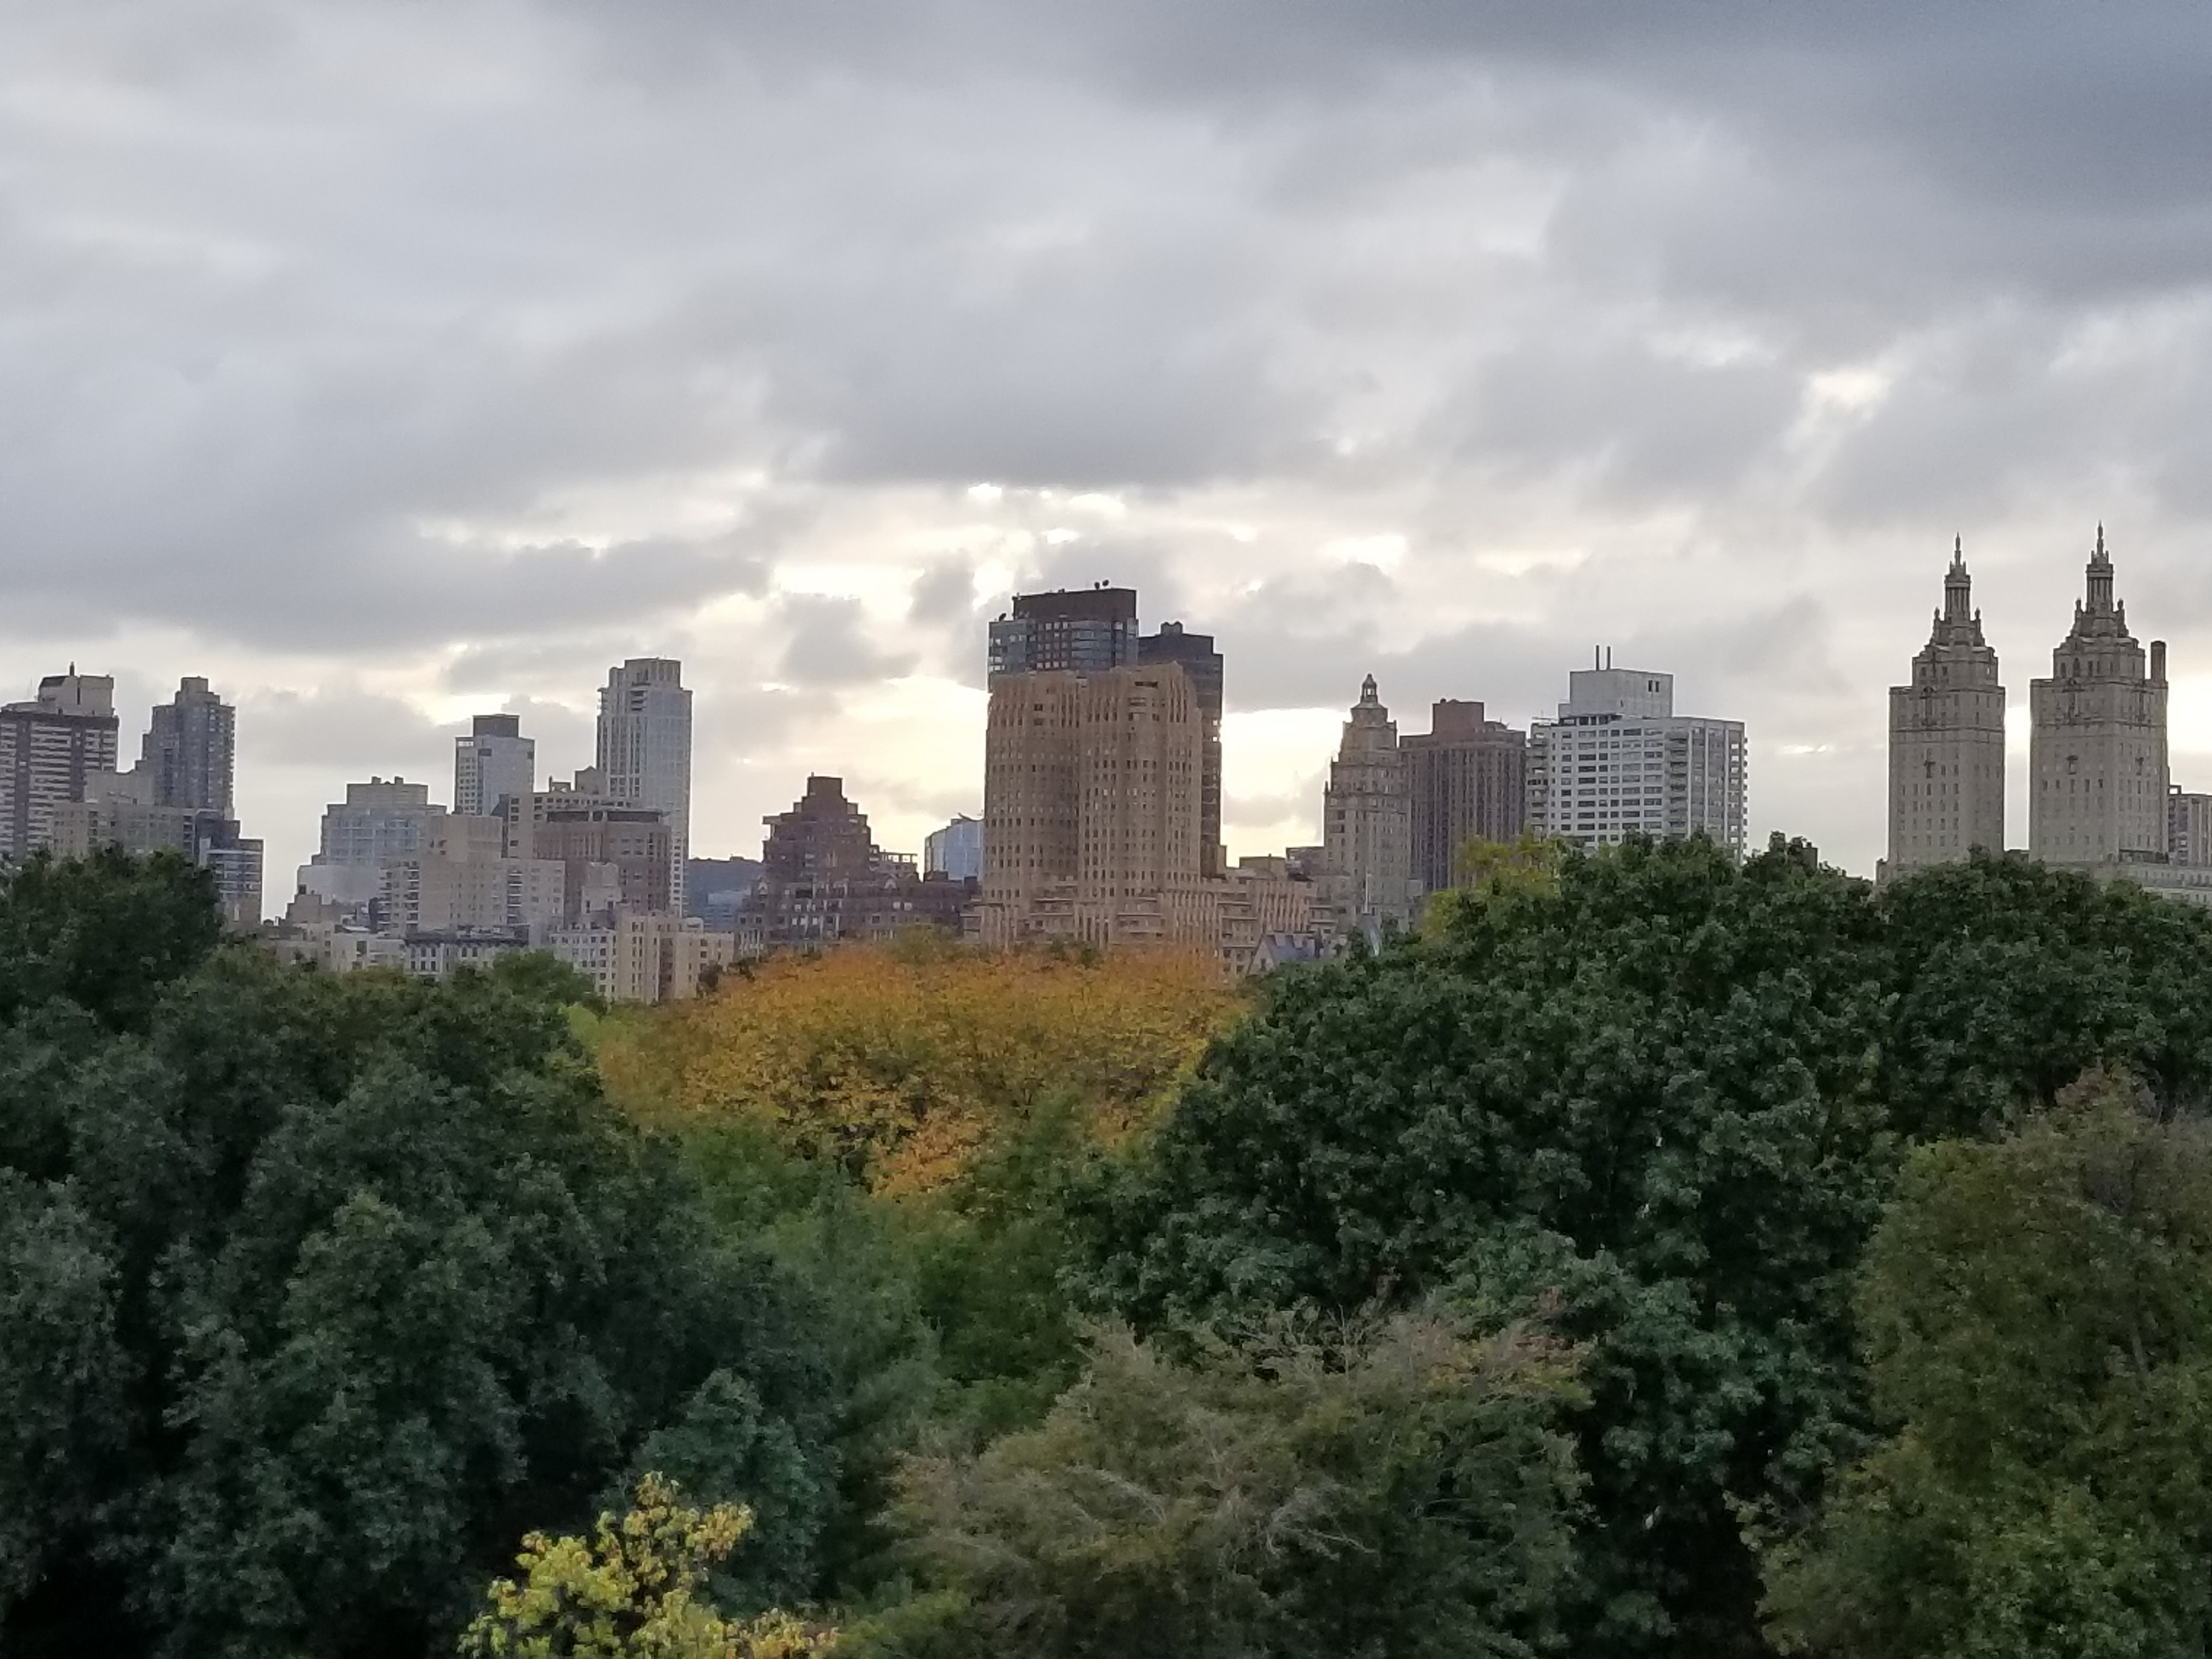 Central Park from Metropolitan Museum of Art, New York